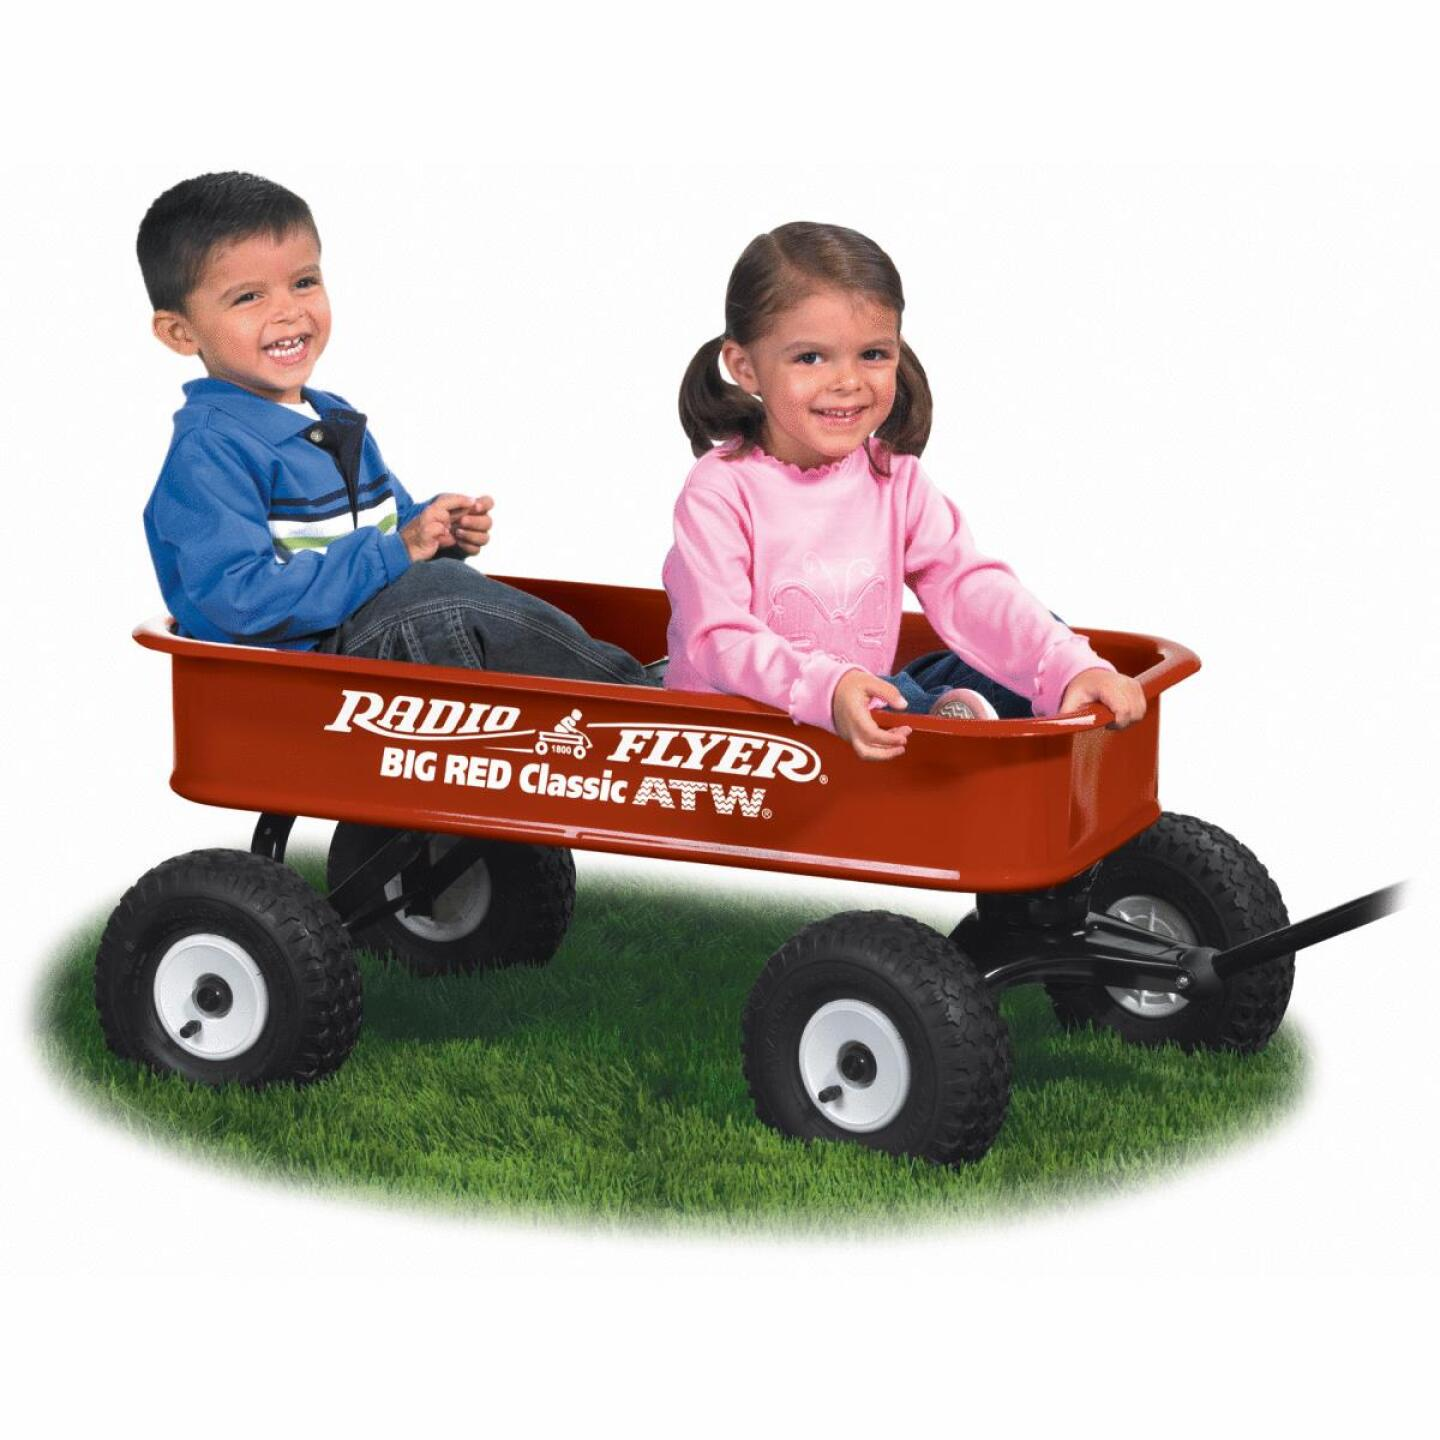 Radio Flyer Big Red Classic 36 In. ATW Wagon Image 3